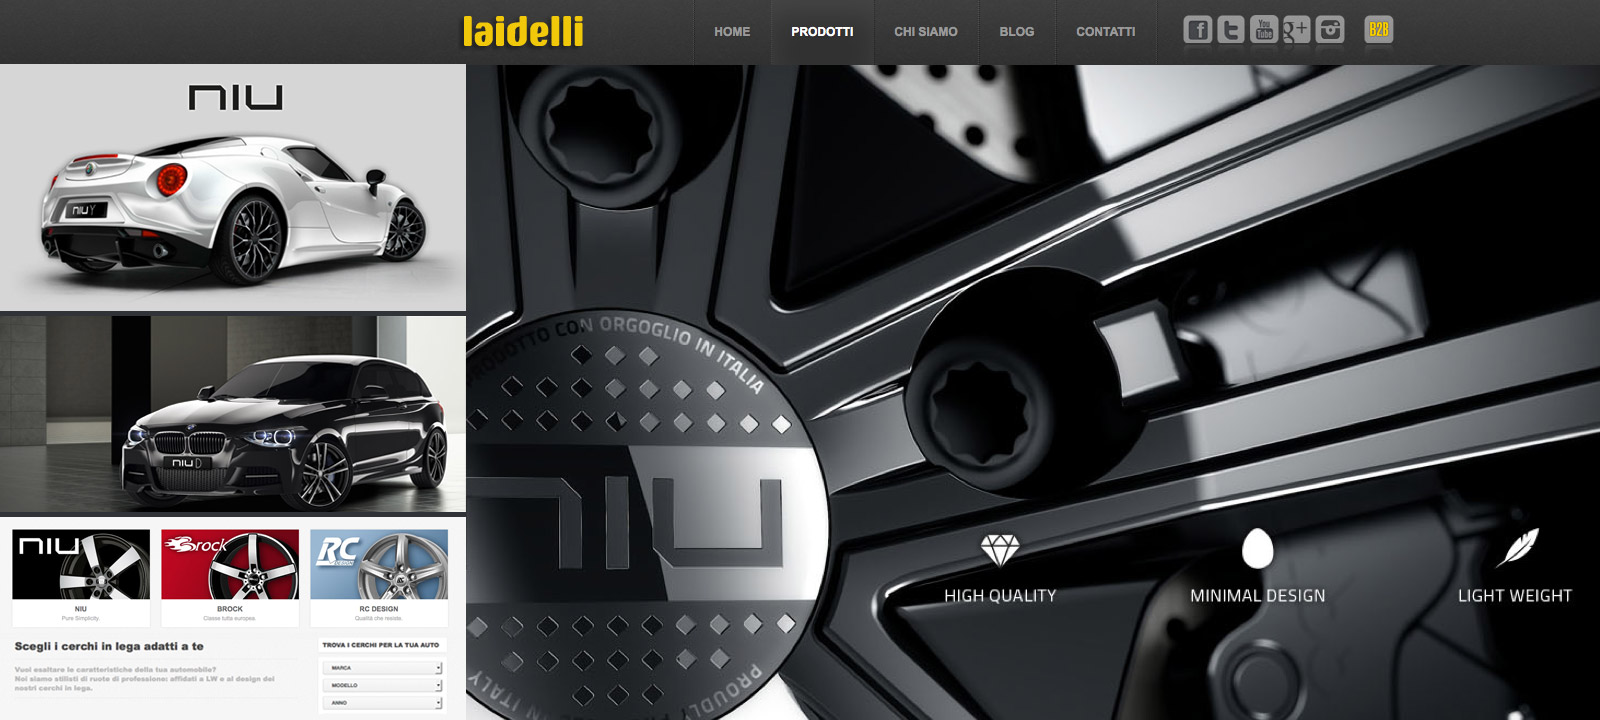 Laidelli Wheels